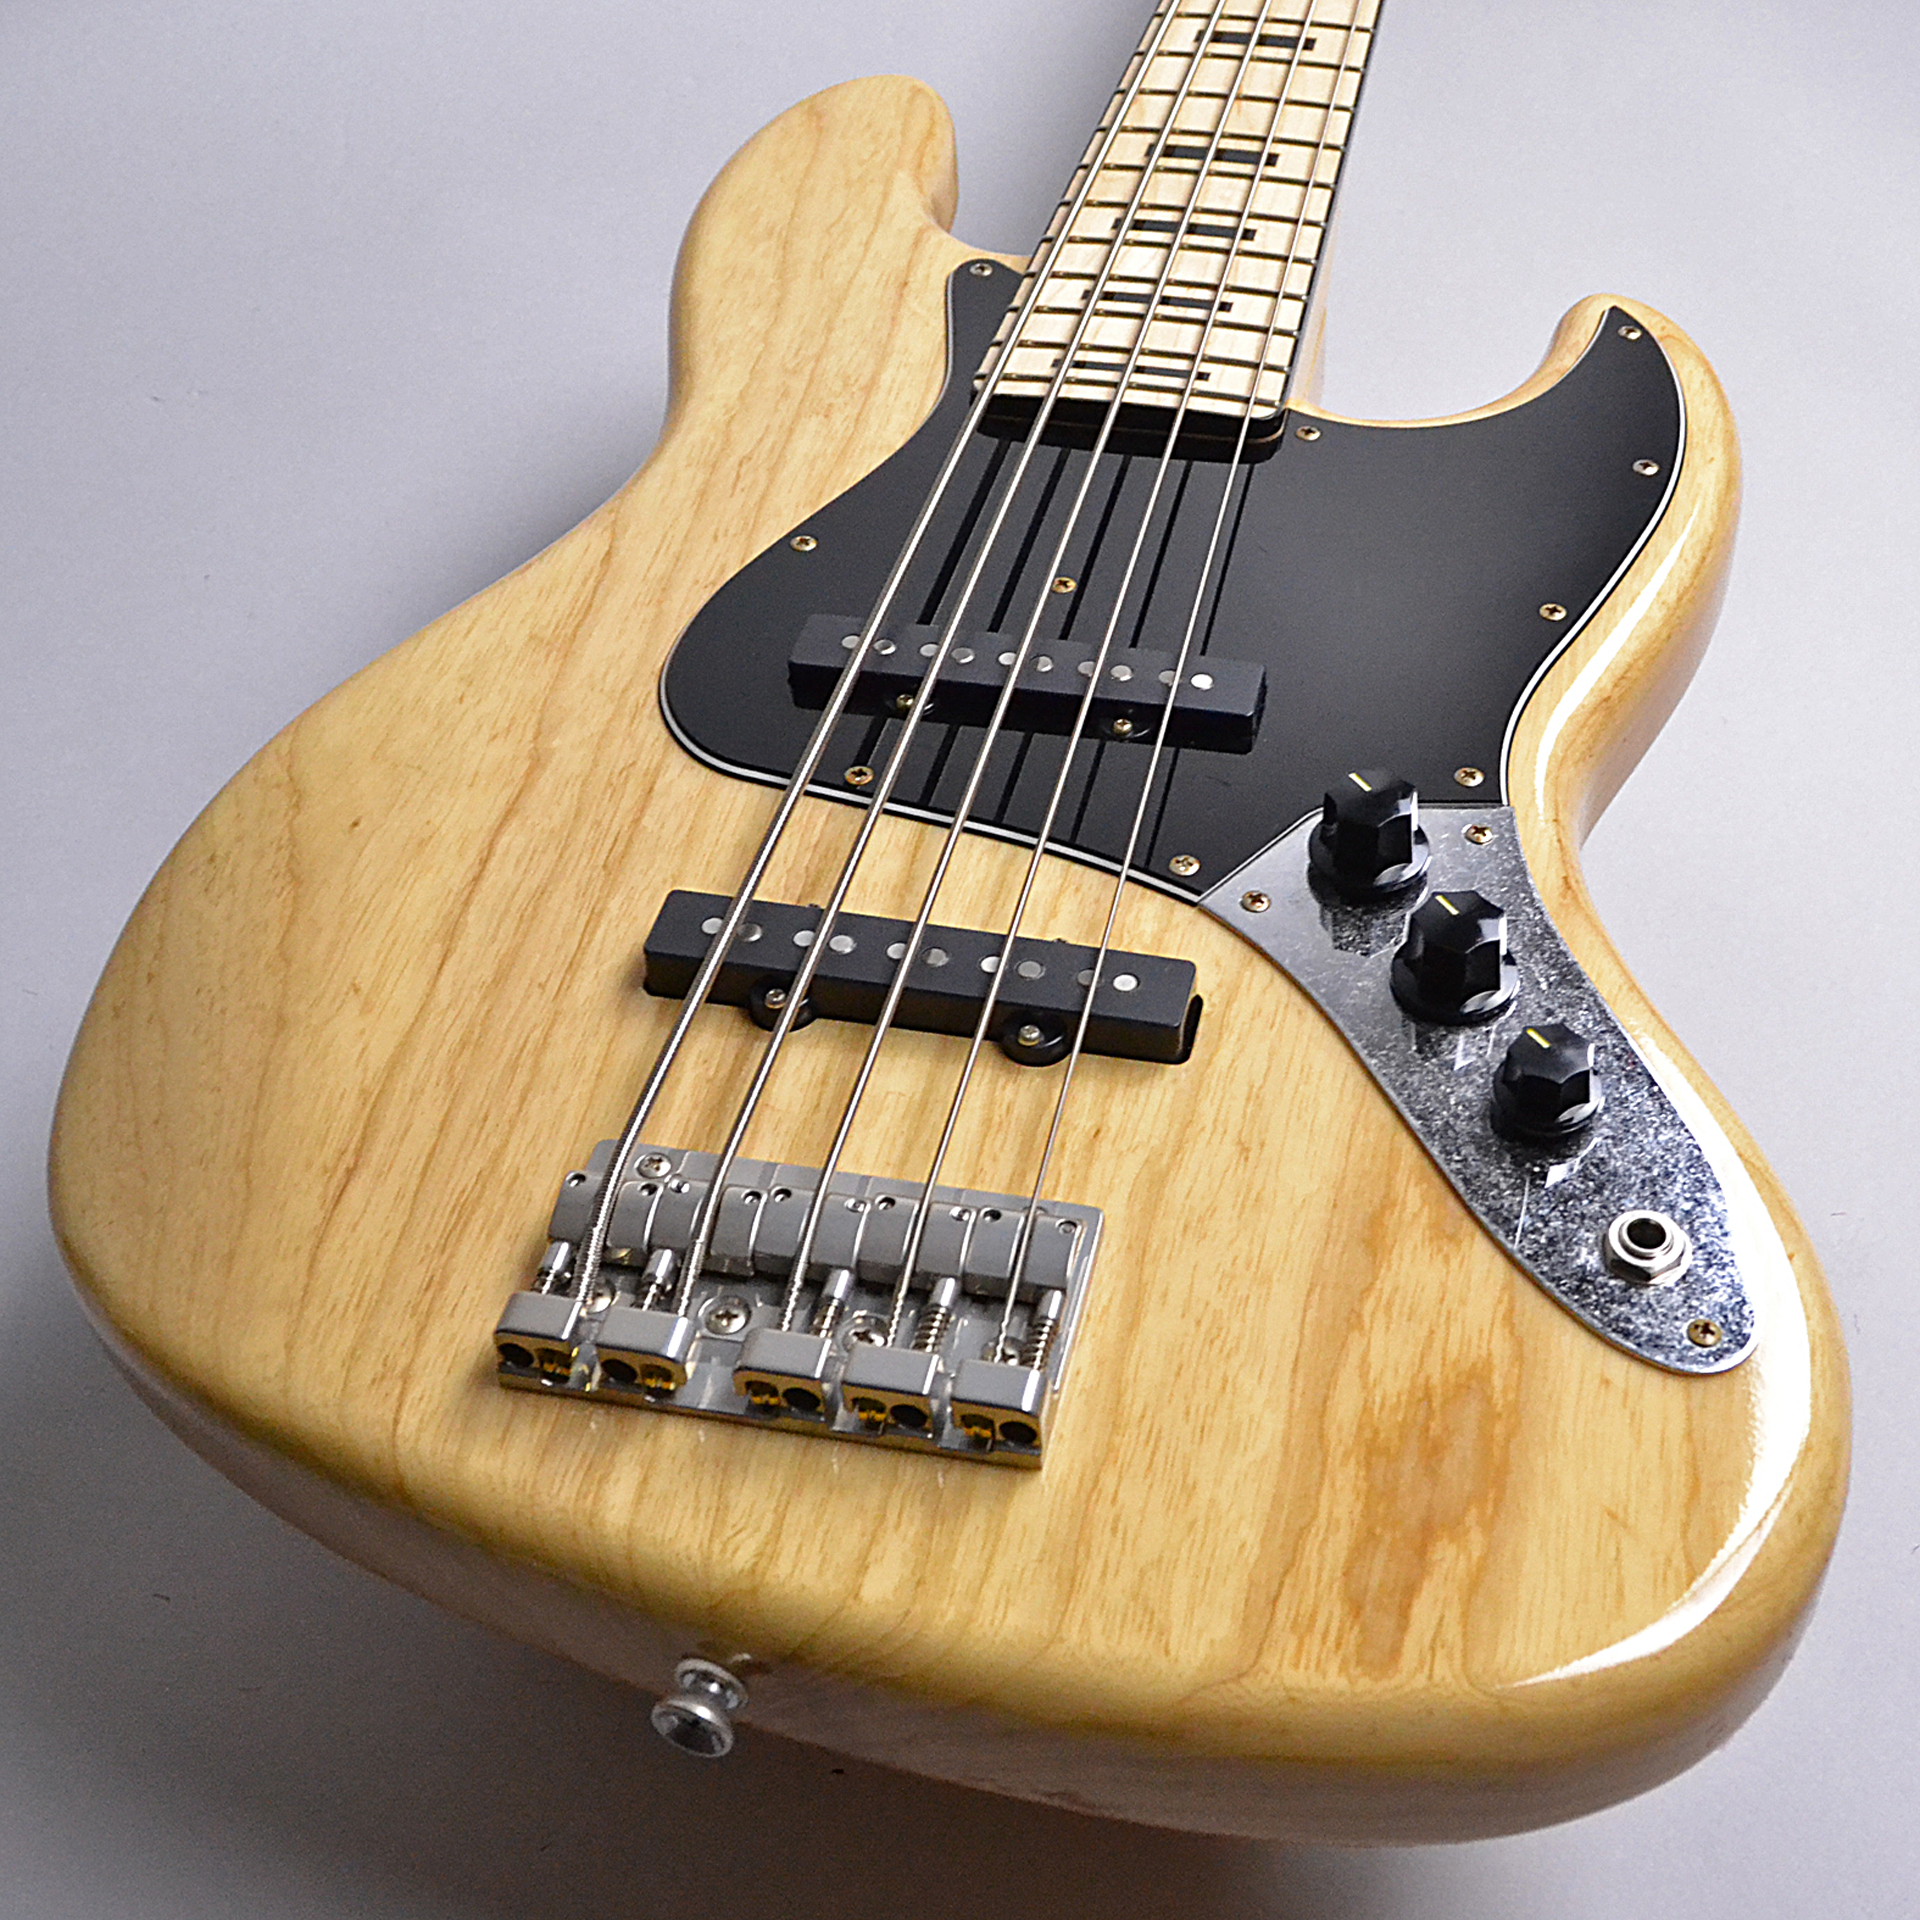 HR-BJ5/M Ash Natural Rugged Finished Looks Like Oldのヘッド画像